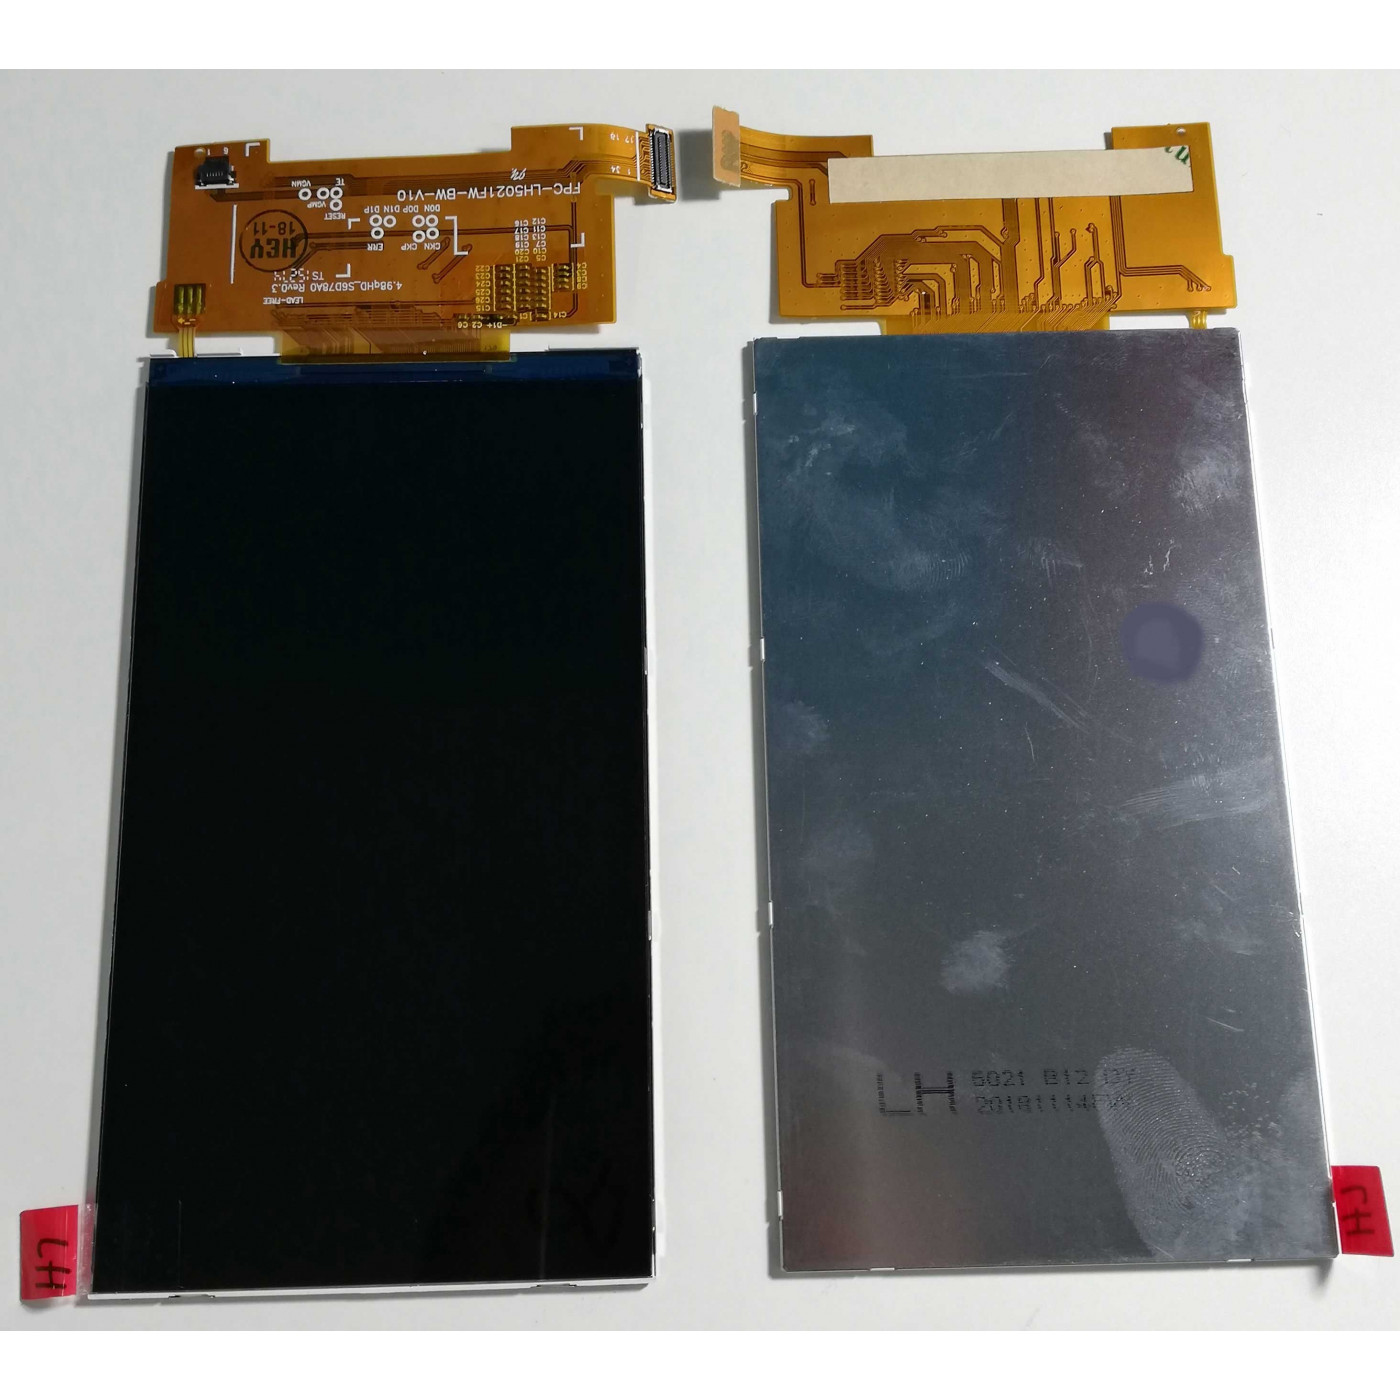 LCD DISPLAY Samsung Galaxy Grand Prime SM G530 G530FZ G531 G531F SCHERMO MONITOR